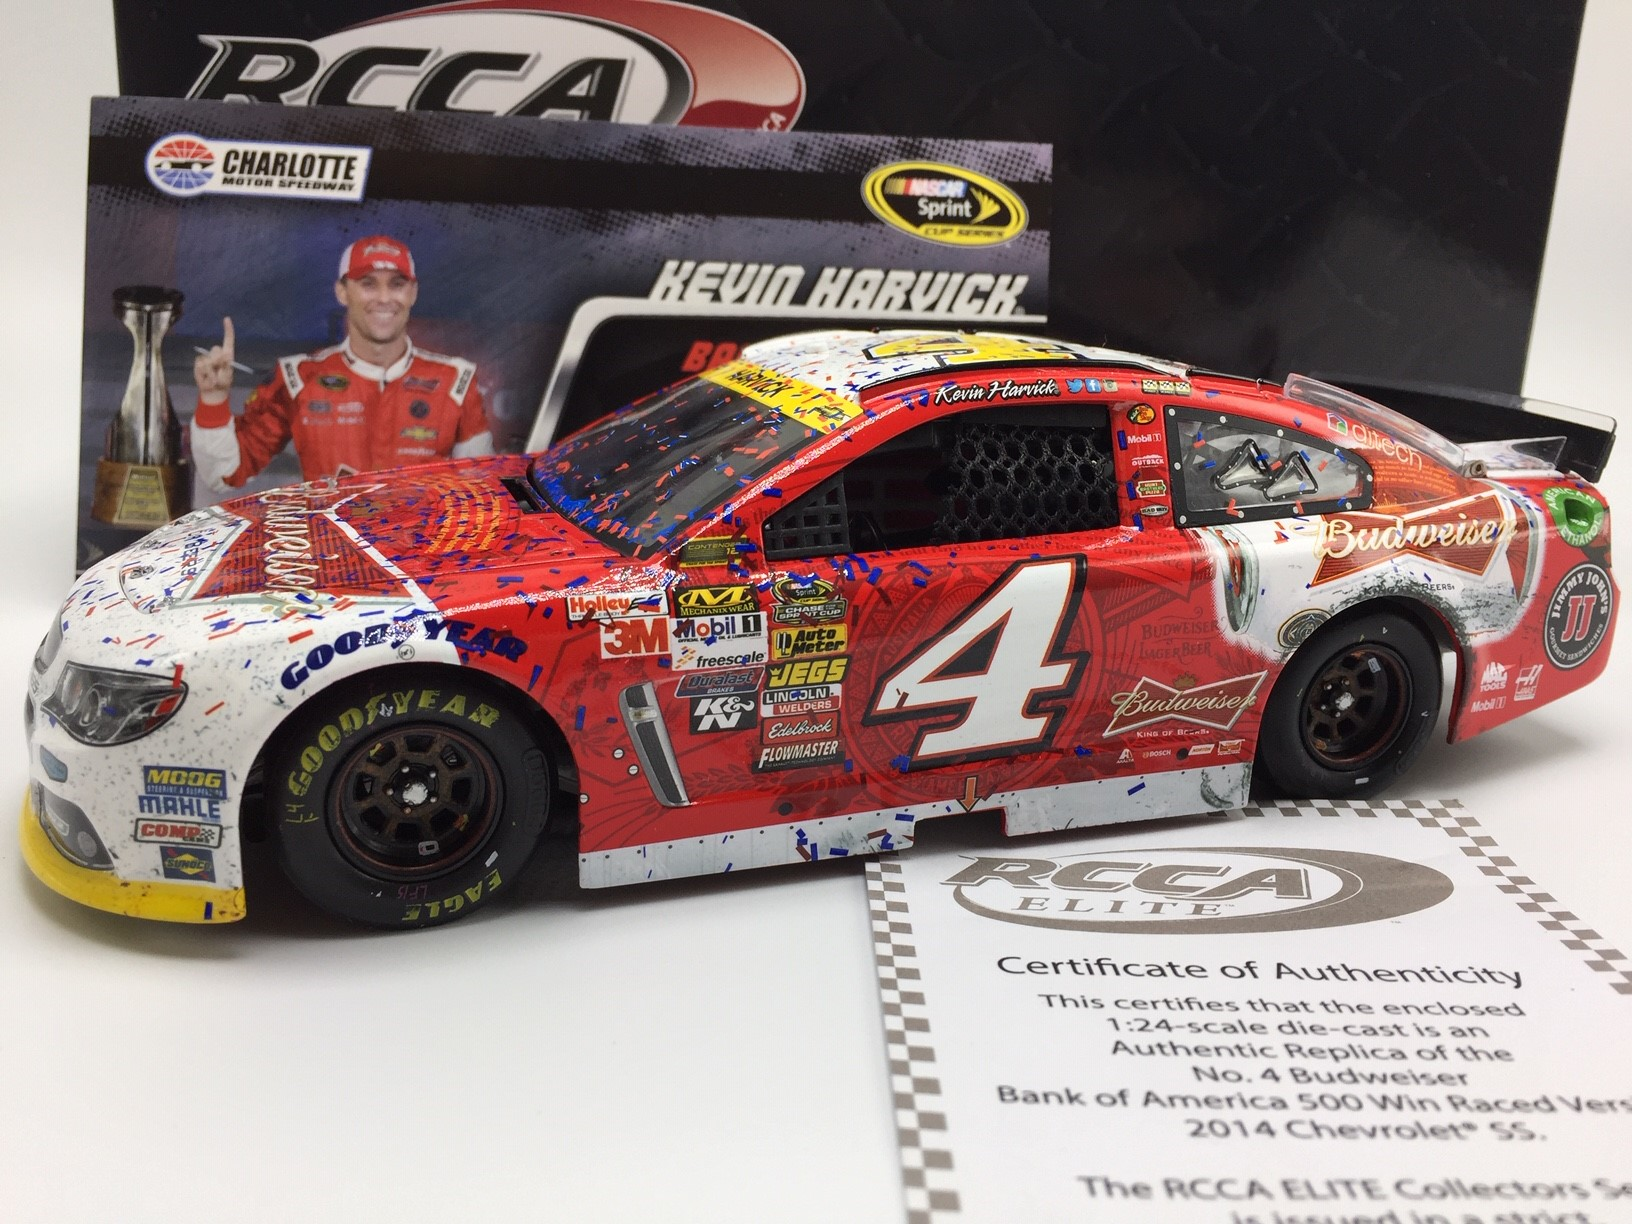 KEVIN HARVICK 2014 BUDWEISER CHARLOTTE RACED WIN 1:24 DIECAST